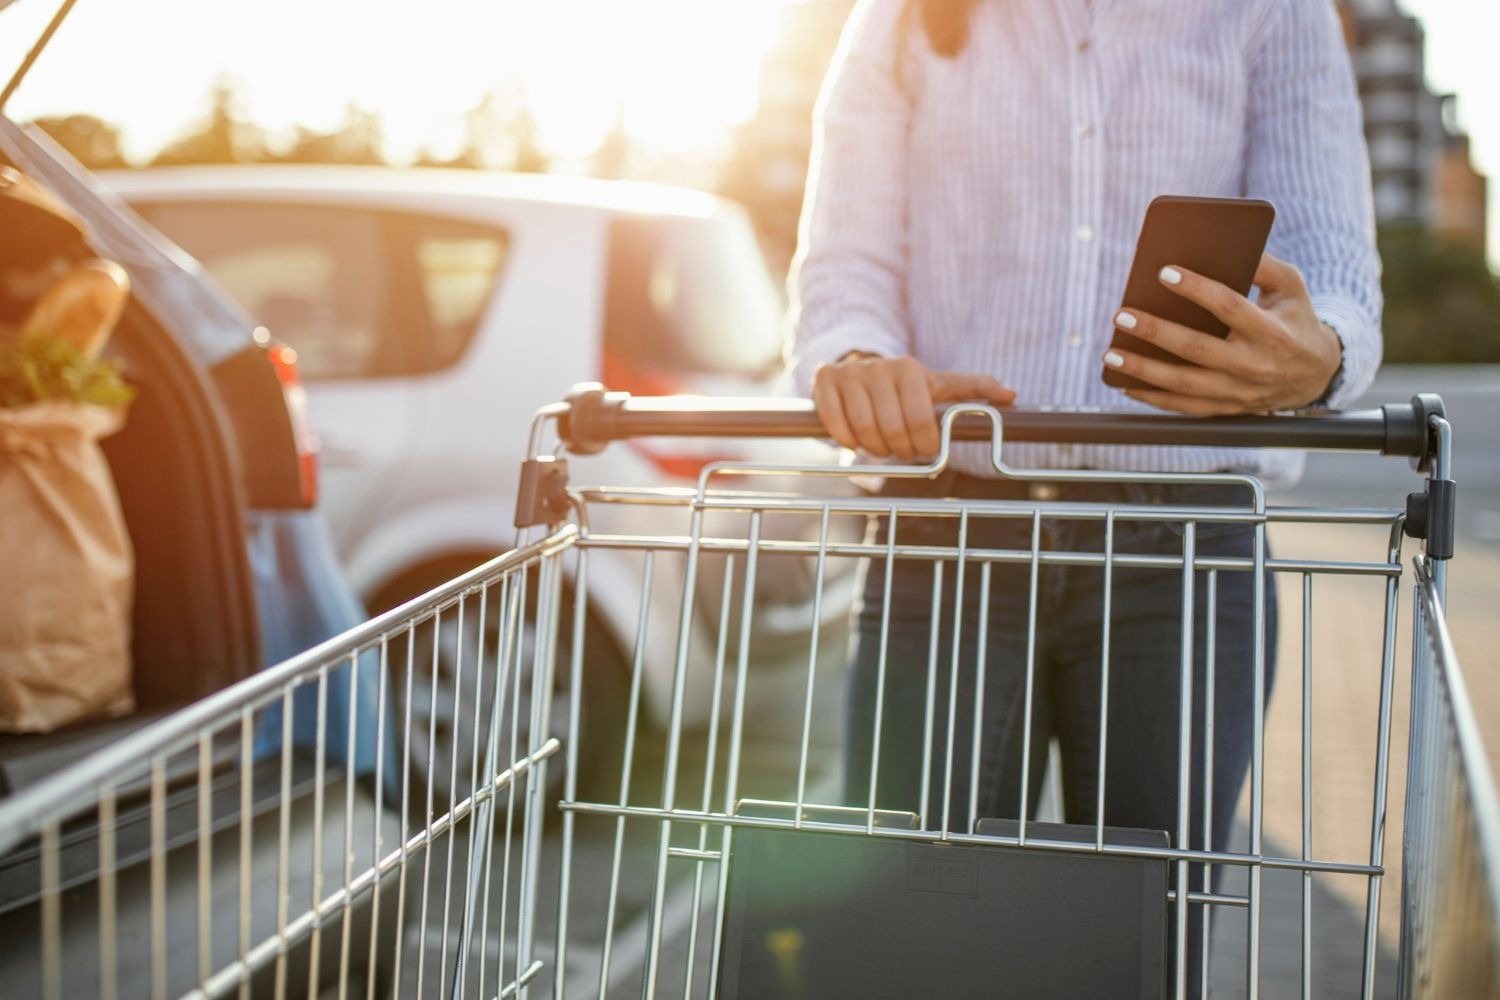 A woman in a white shirt holding a phone while pushing a shopping trolley